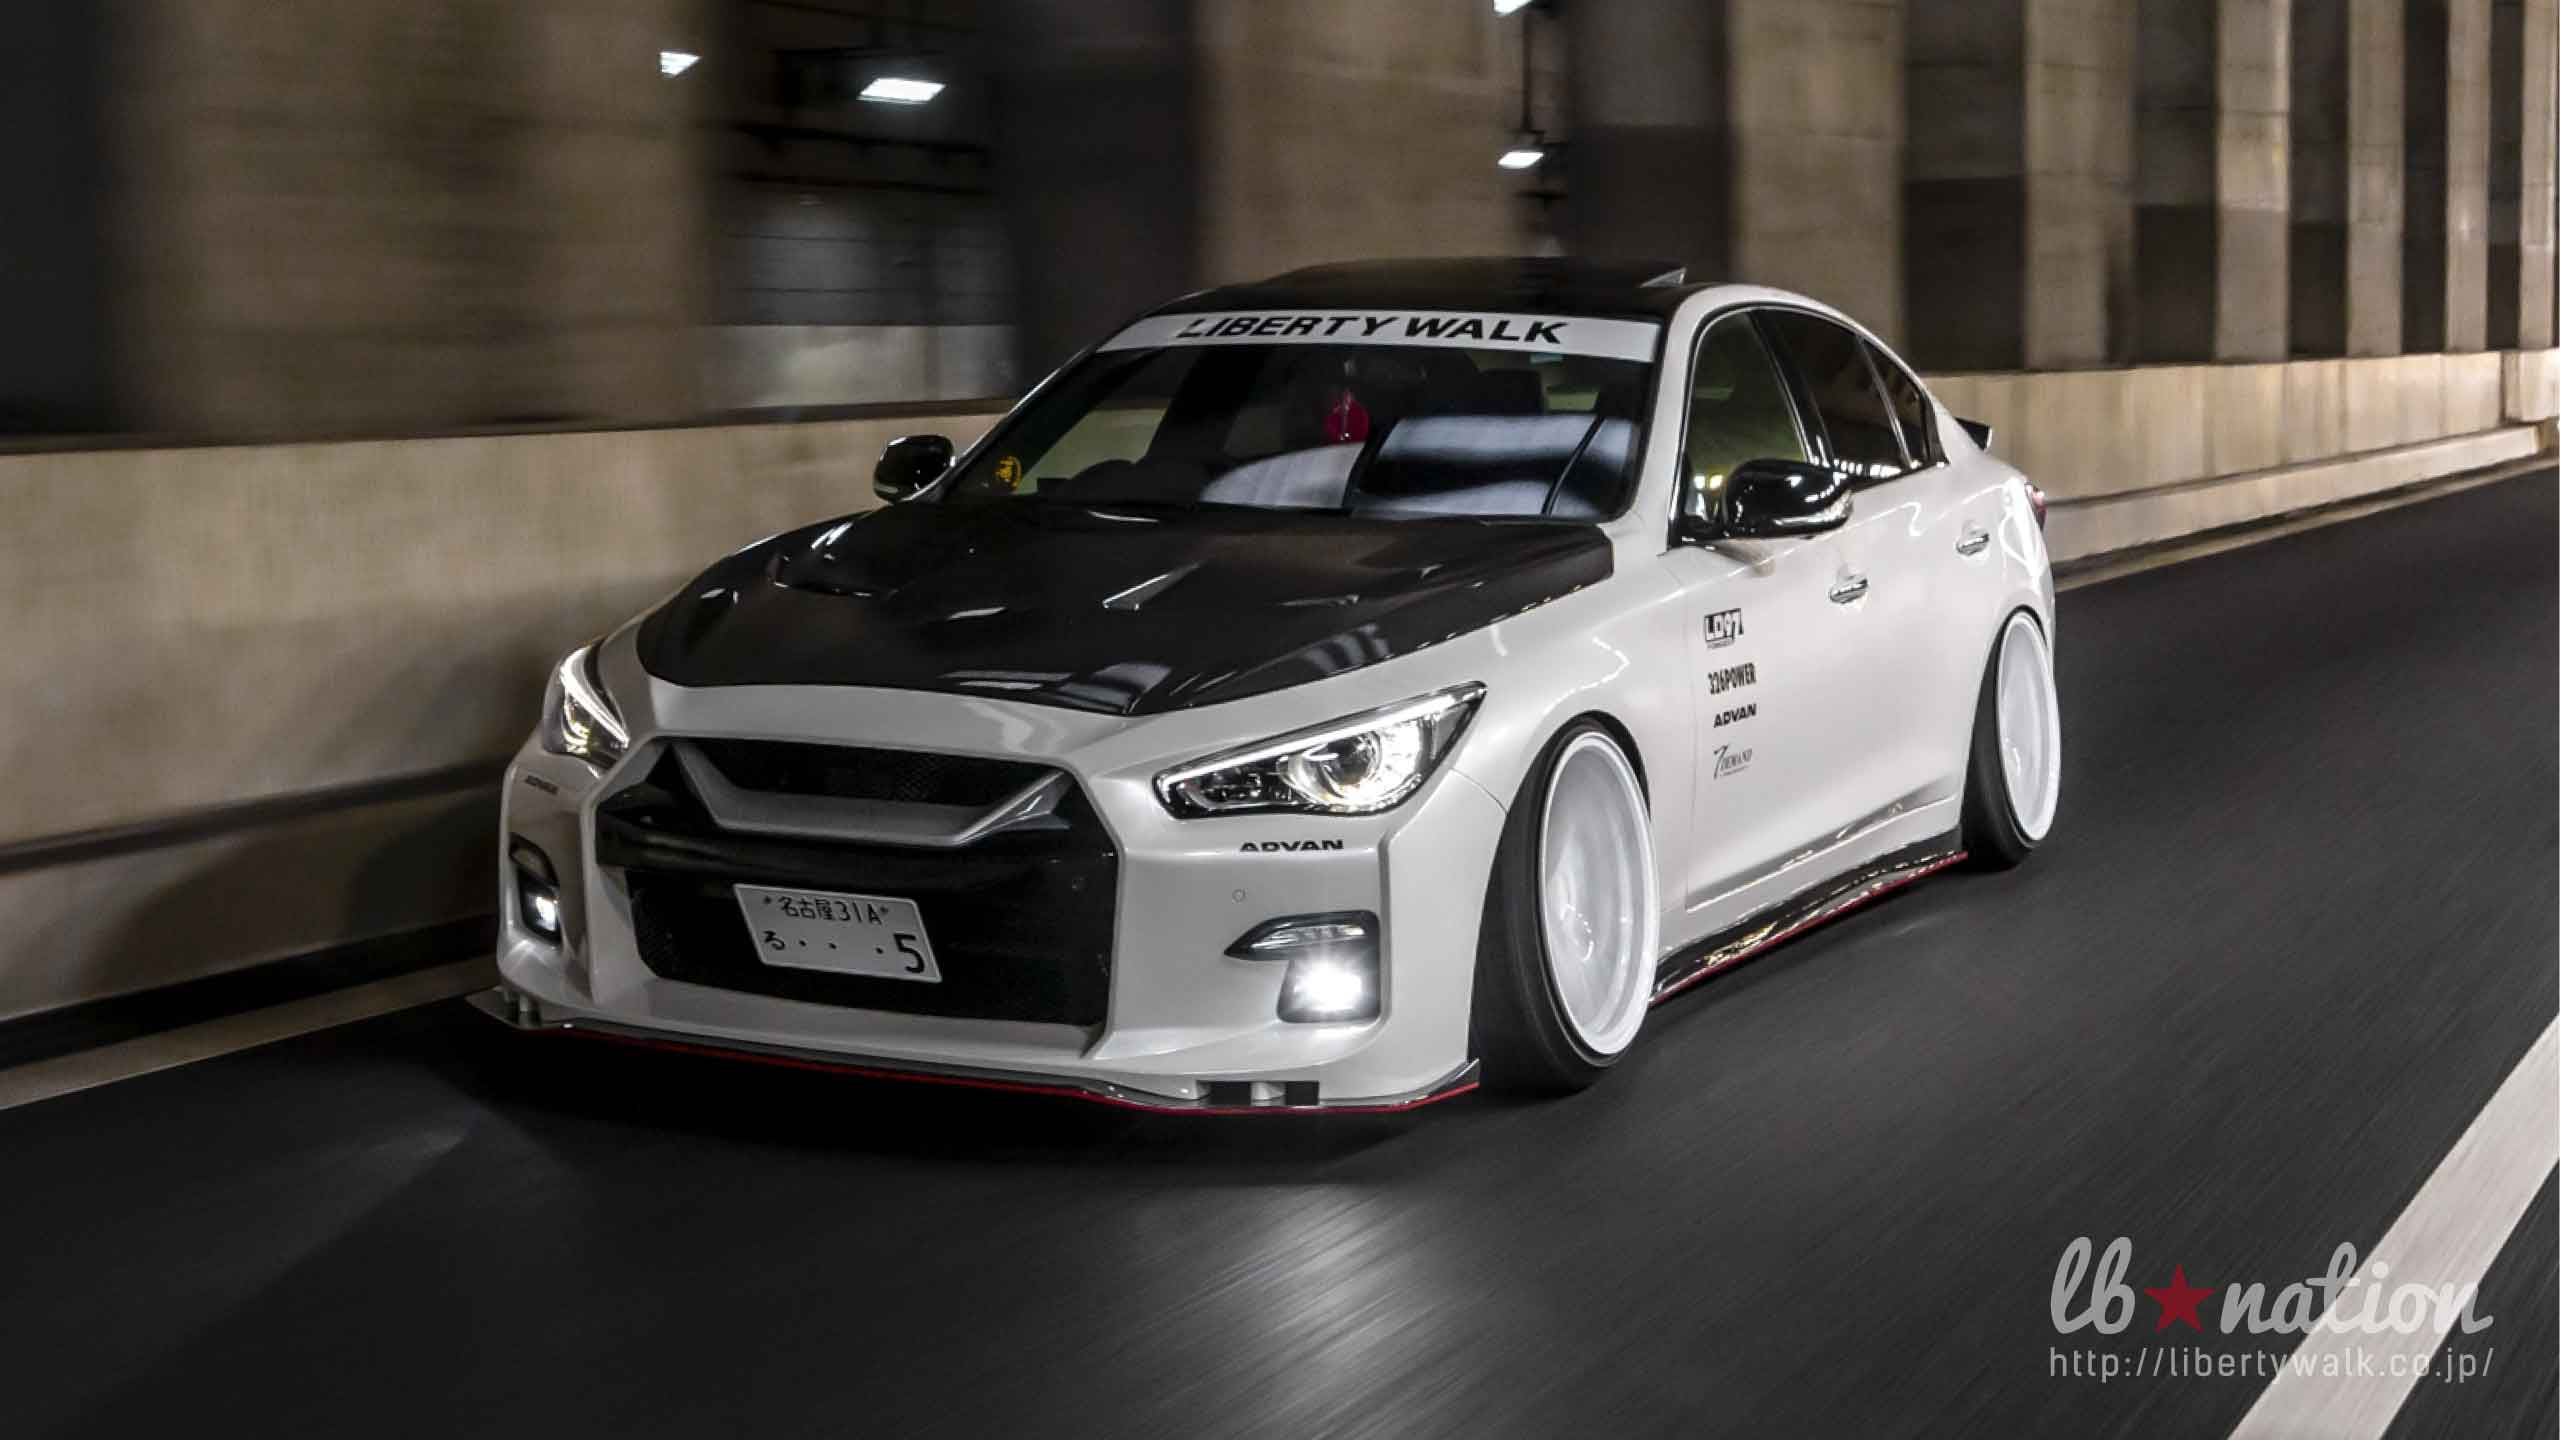 V37_21 lb★nation  NISSAN V37 SKYLINE / INFINITI Q50